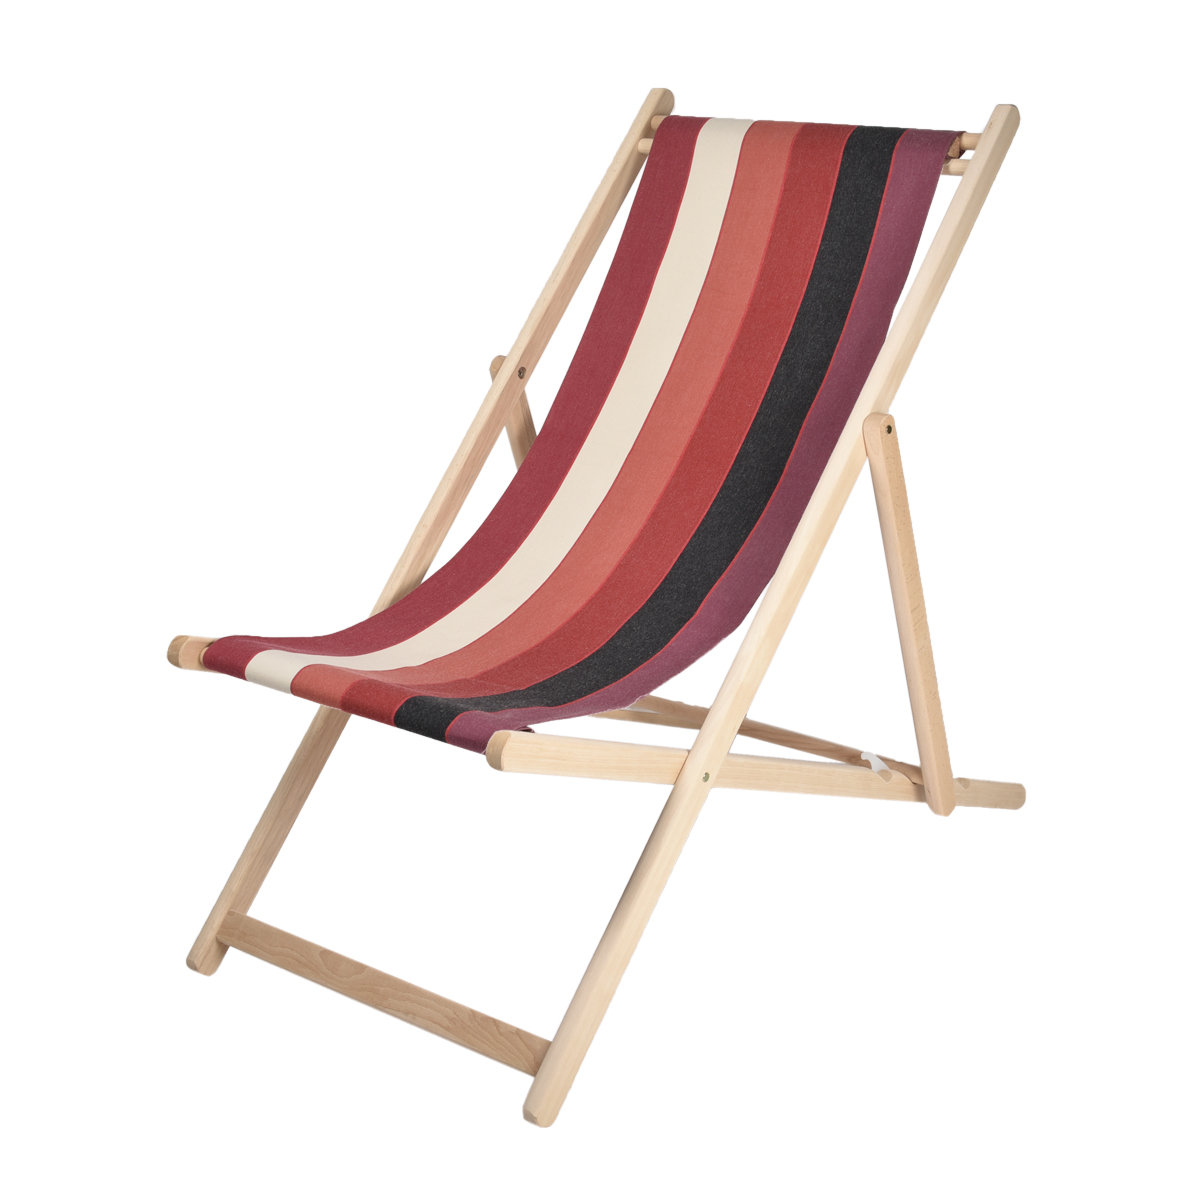 Chaise Longue Chilienne Chaise Toile Elegant Chaise Toile Chaise Longue Plage T